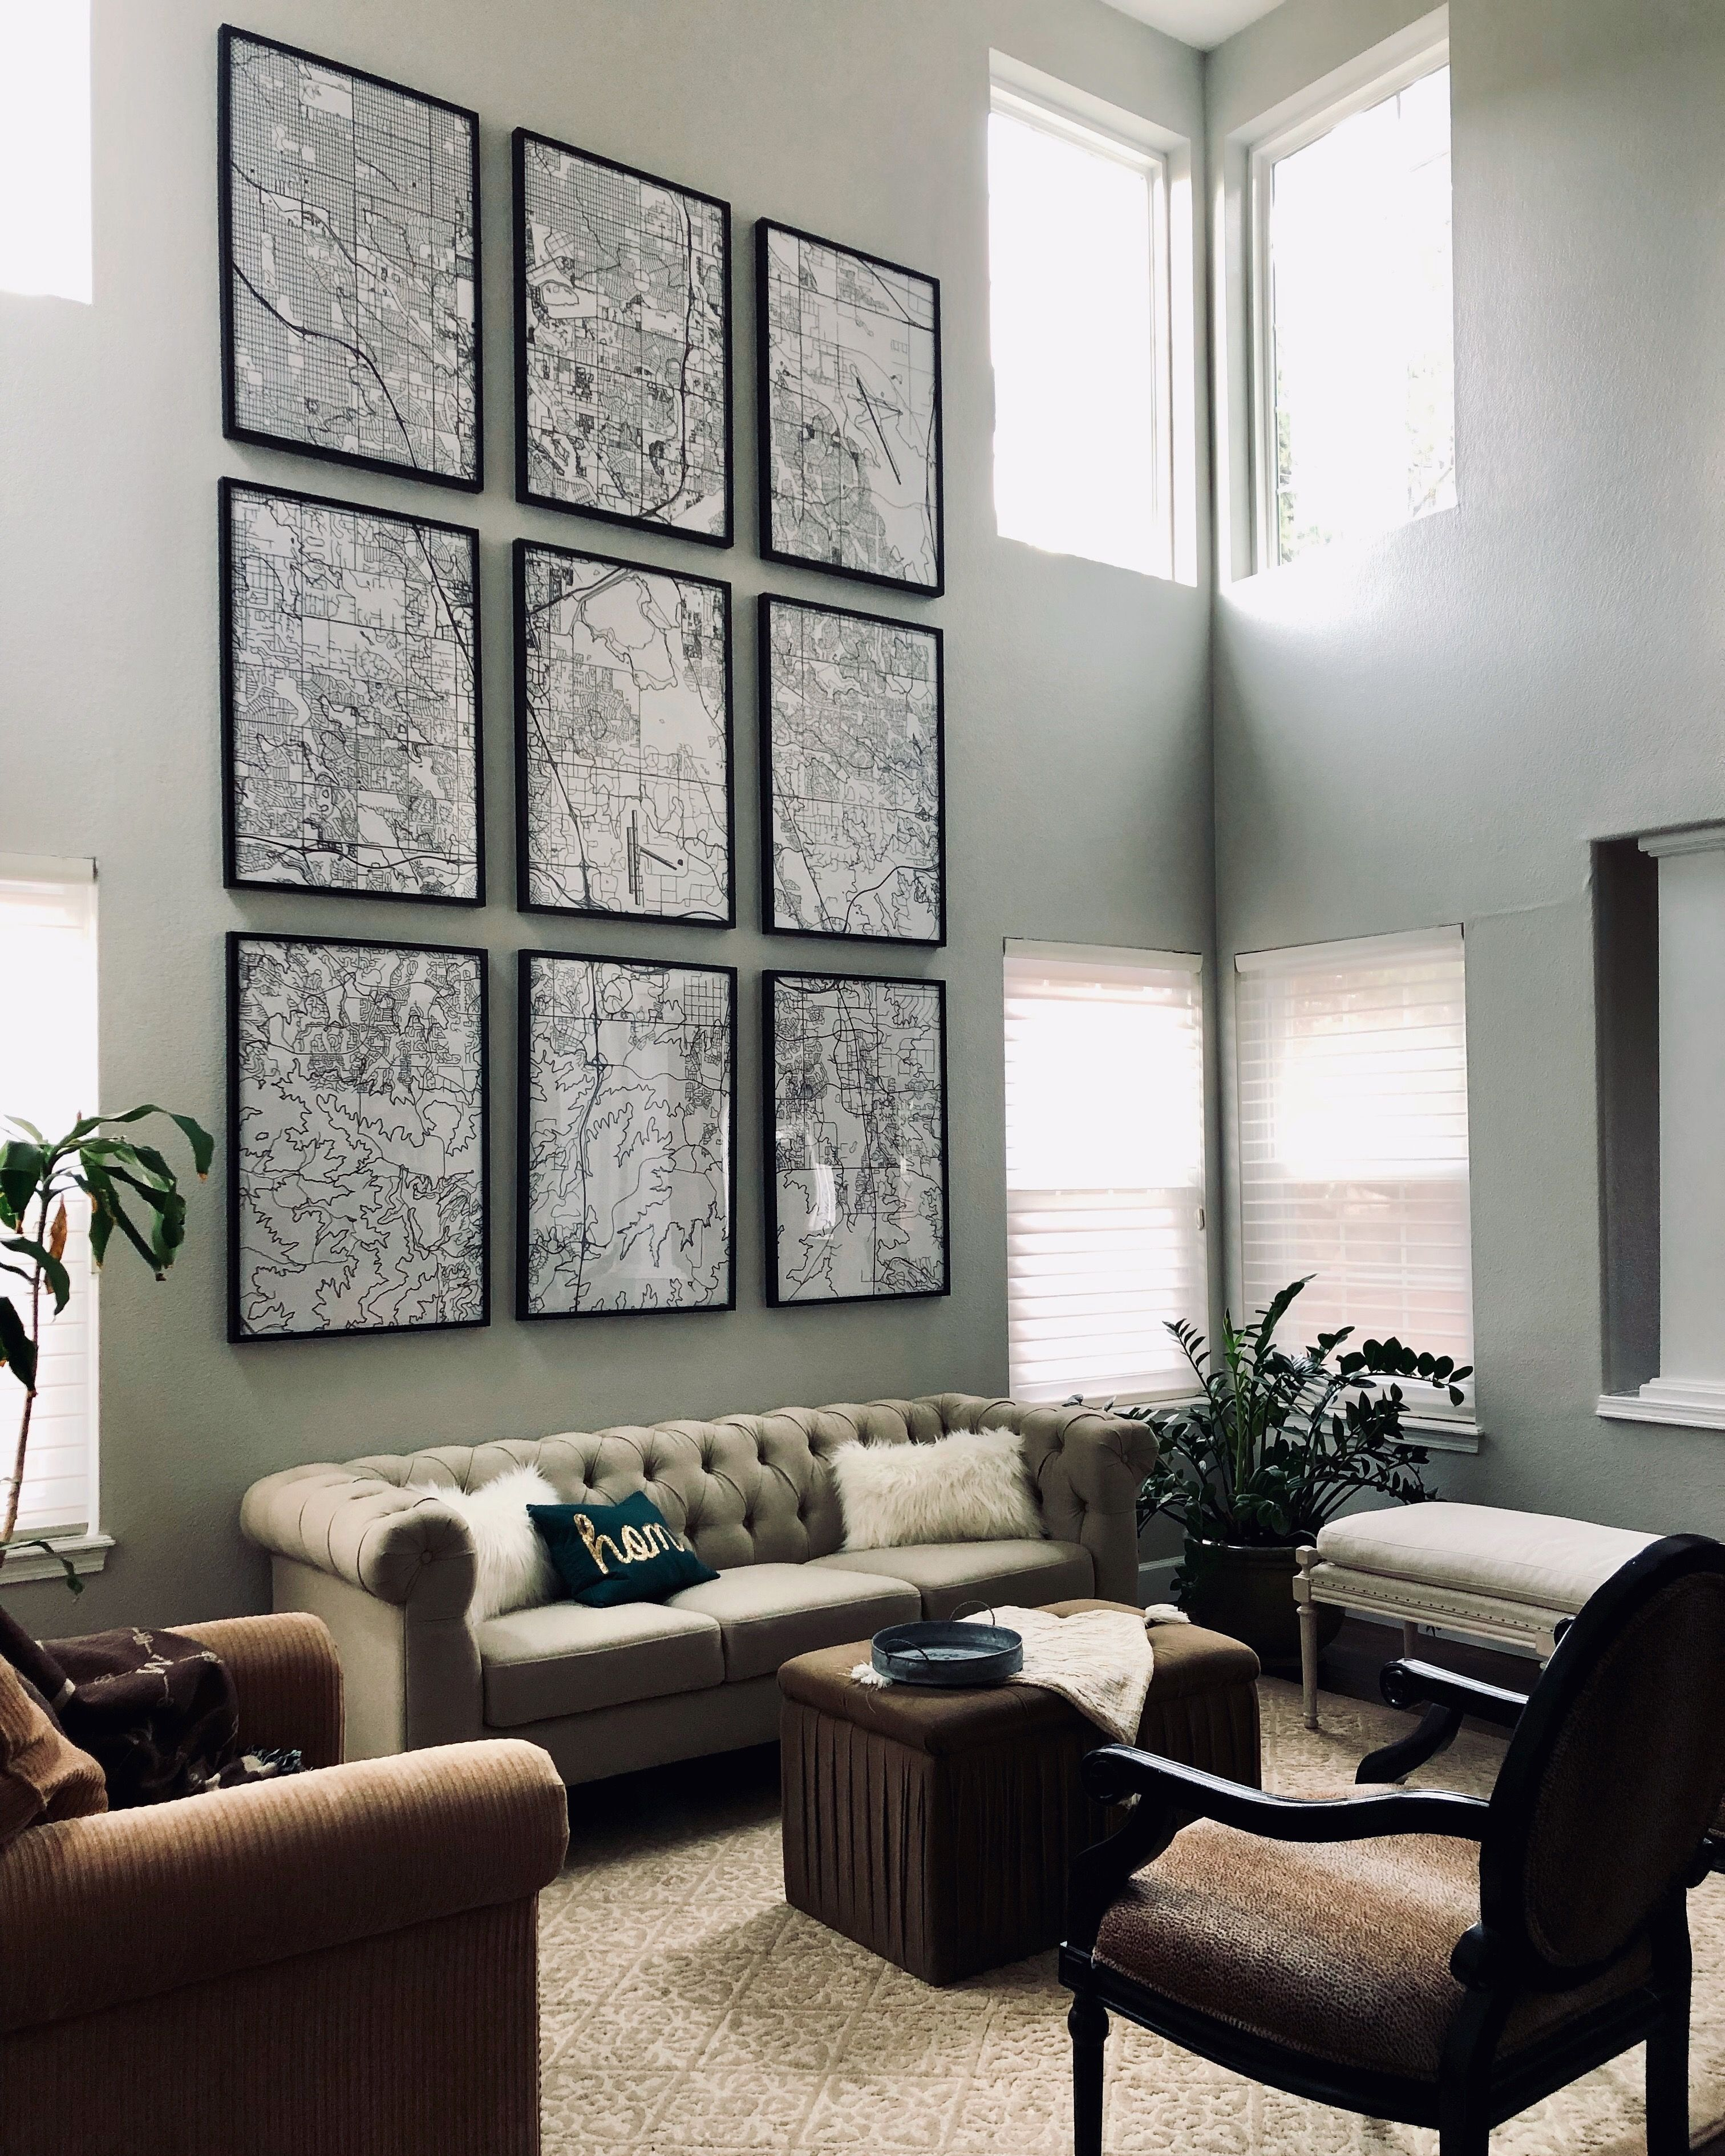 Not Sure What To Do With A Large Living Room Wall In A Room With High Ceilings In 2020 Large Wall Decor Living Room Tall Ceiling Living Room High Ceiling Living Room